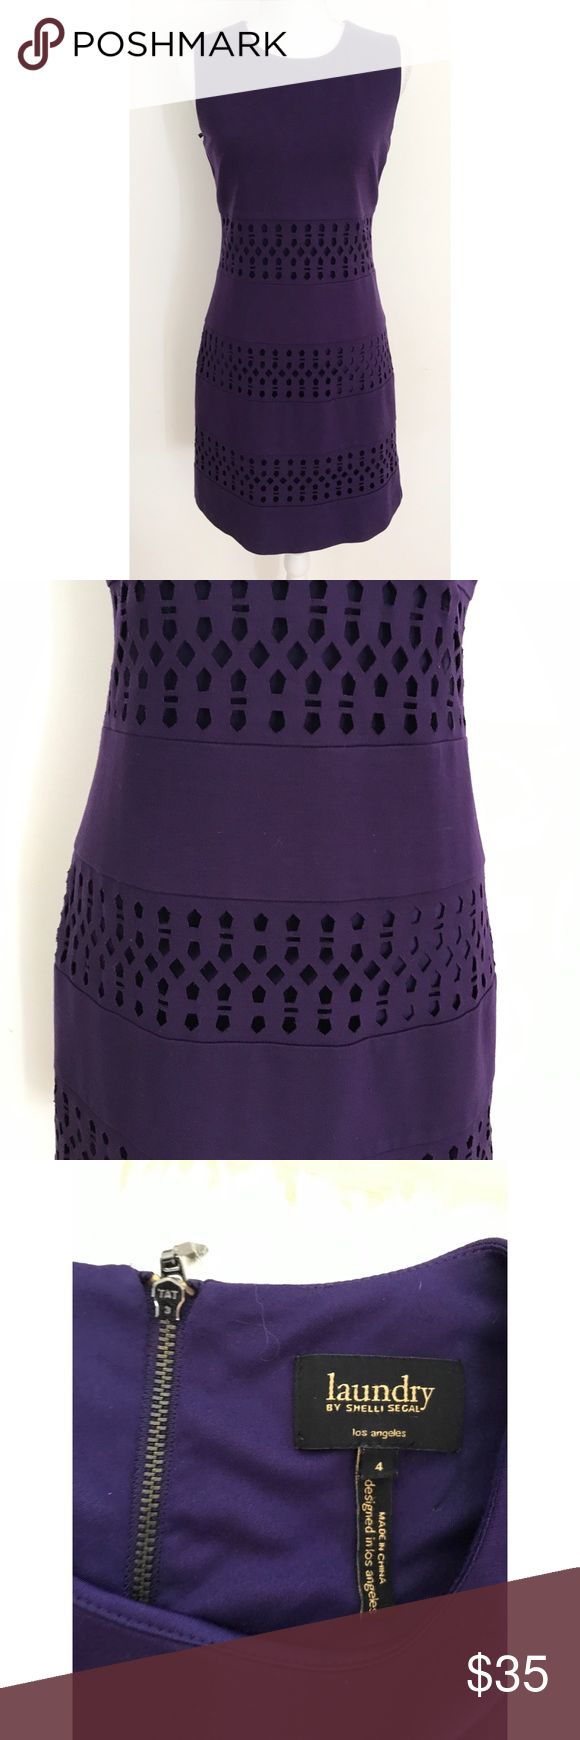 """Laundry Shelli  Segal Lattice Cut Out Panels Dress In great pre-loved condition purple Lattice Geo like shapes cut out panel dress from Laundry by Shelli Segal in size 4. Lined with exposed pull zipper in the back. No flaws. In a deep purple color. Measure about 35"""" length, 16.5"""" bust, 15"""" waist. Stretch to the dress. ❌No trades or modeling. Always open to reasonable offers. Bundle more items together for better pricing. Thank you‼️ Laundry By Shelli Segal Dresses Mini"""